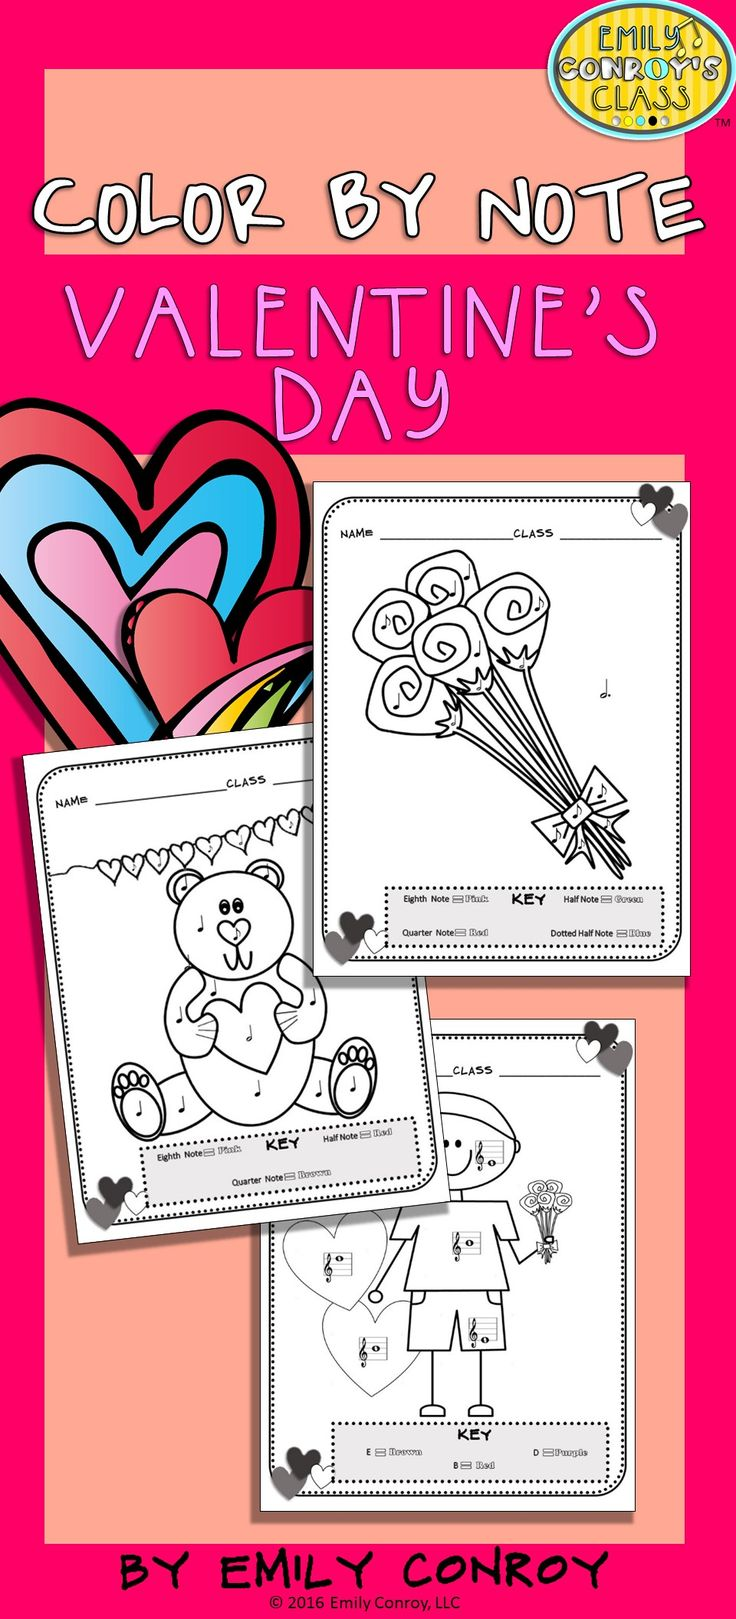 Color by Note (Valentine's Day) contains 13 music coloring sheets for elementary music students. 5 of the coloring pages are color by note, 3 are color by note with a fun connect-the-dots twist, and 5 are color by line or space note. You can use these pages to integrate math into your music curriculum (the connect-the-dot pages require students to count by 2's, 5's and 10's)!